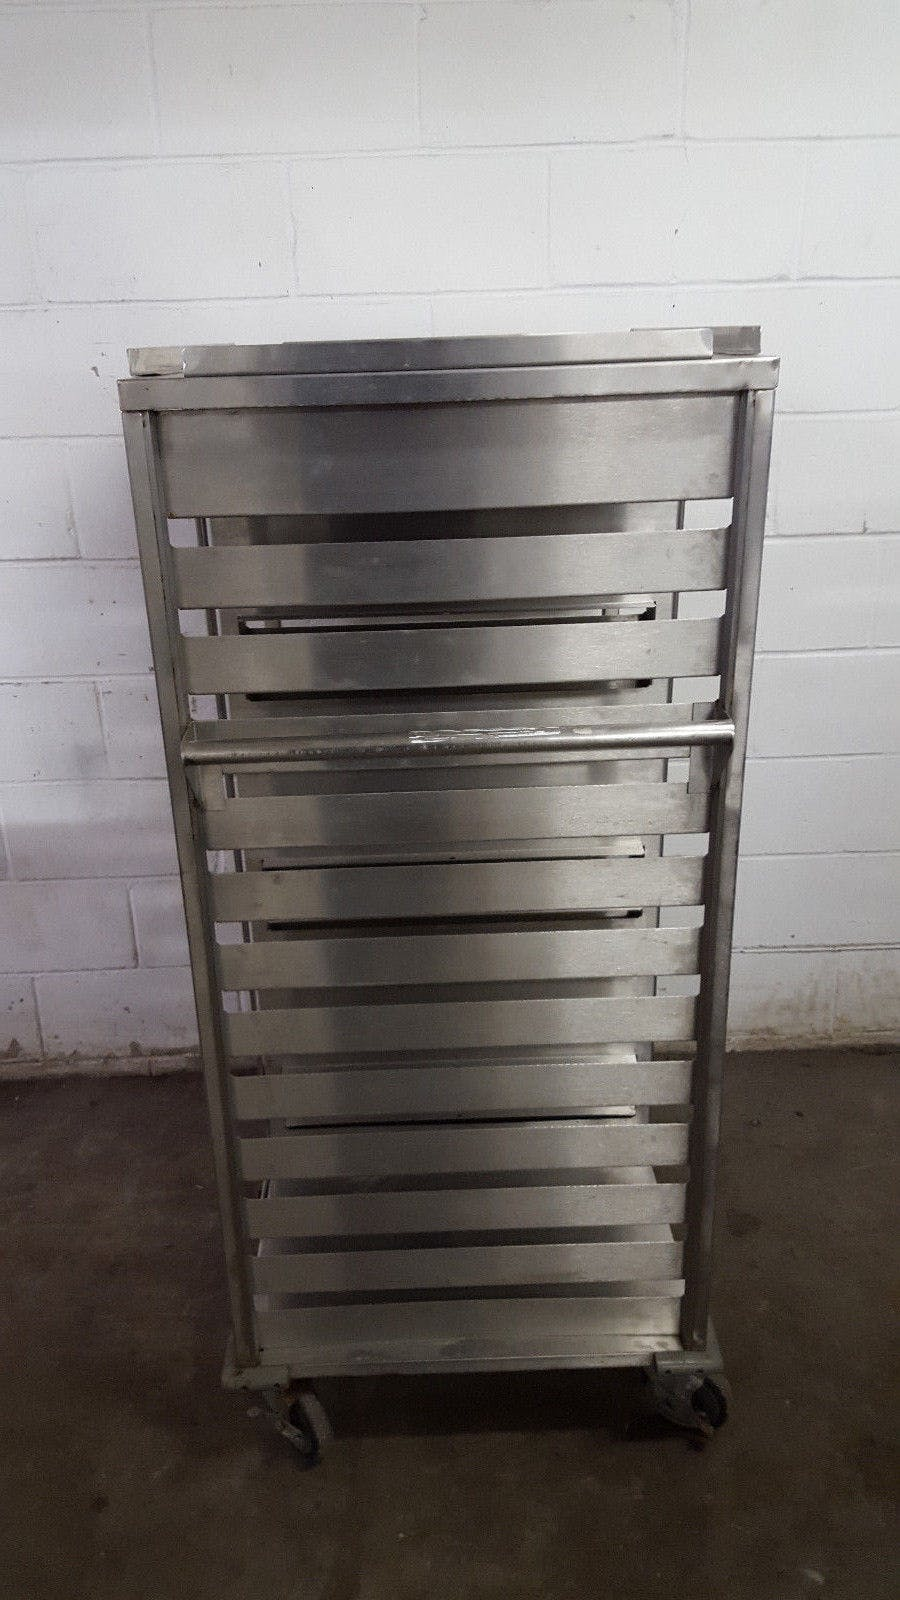 """24 Pan Rack Holder Tray 24"""" x 34"""" x 56"""" - sold by Jak's Restaurant Supply"""